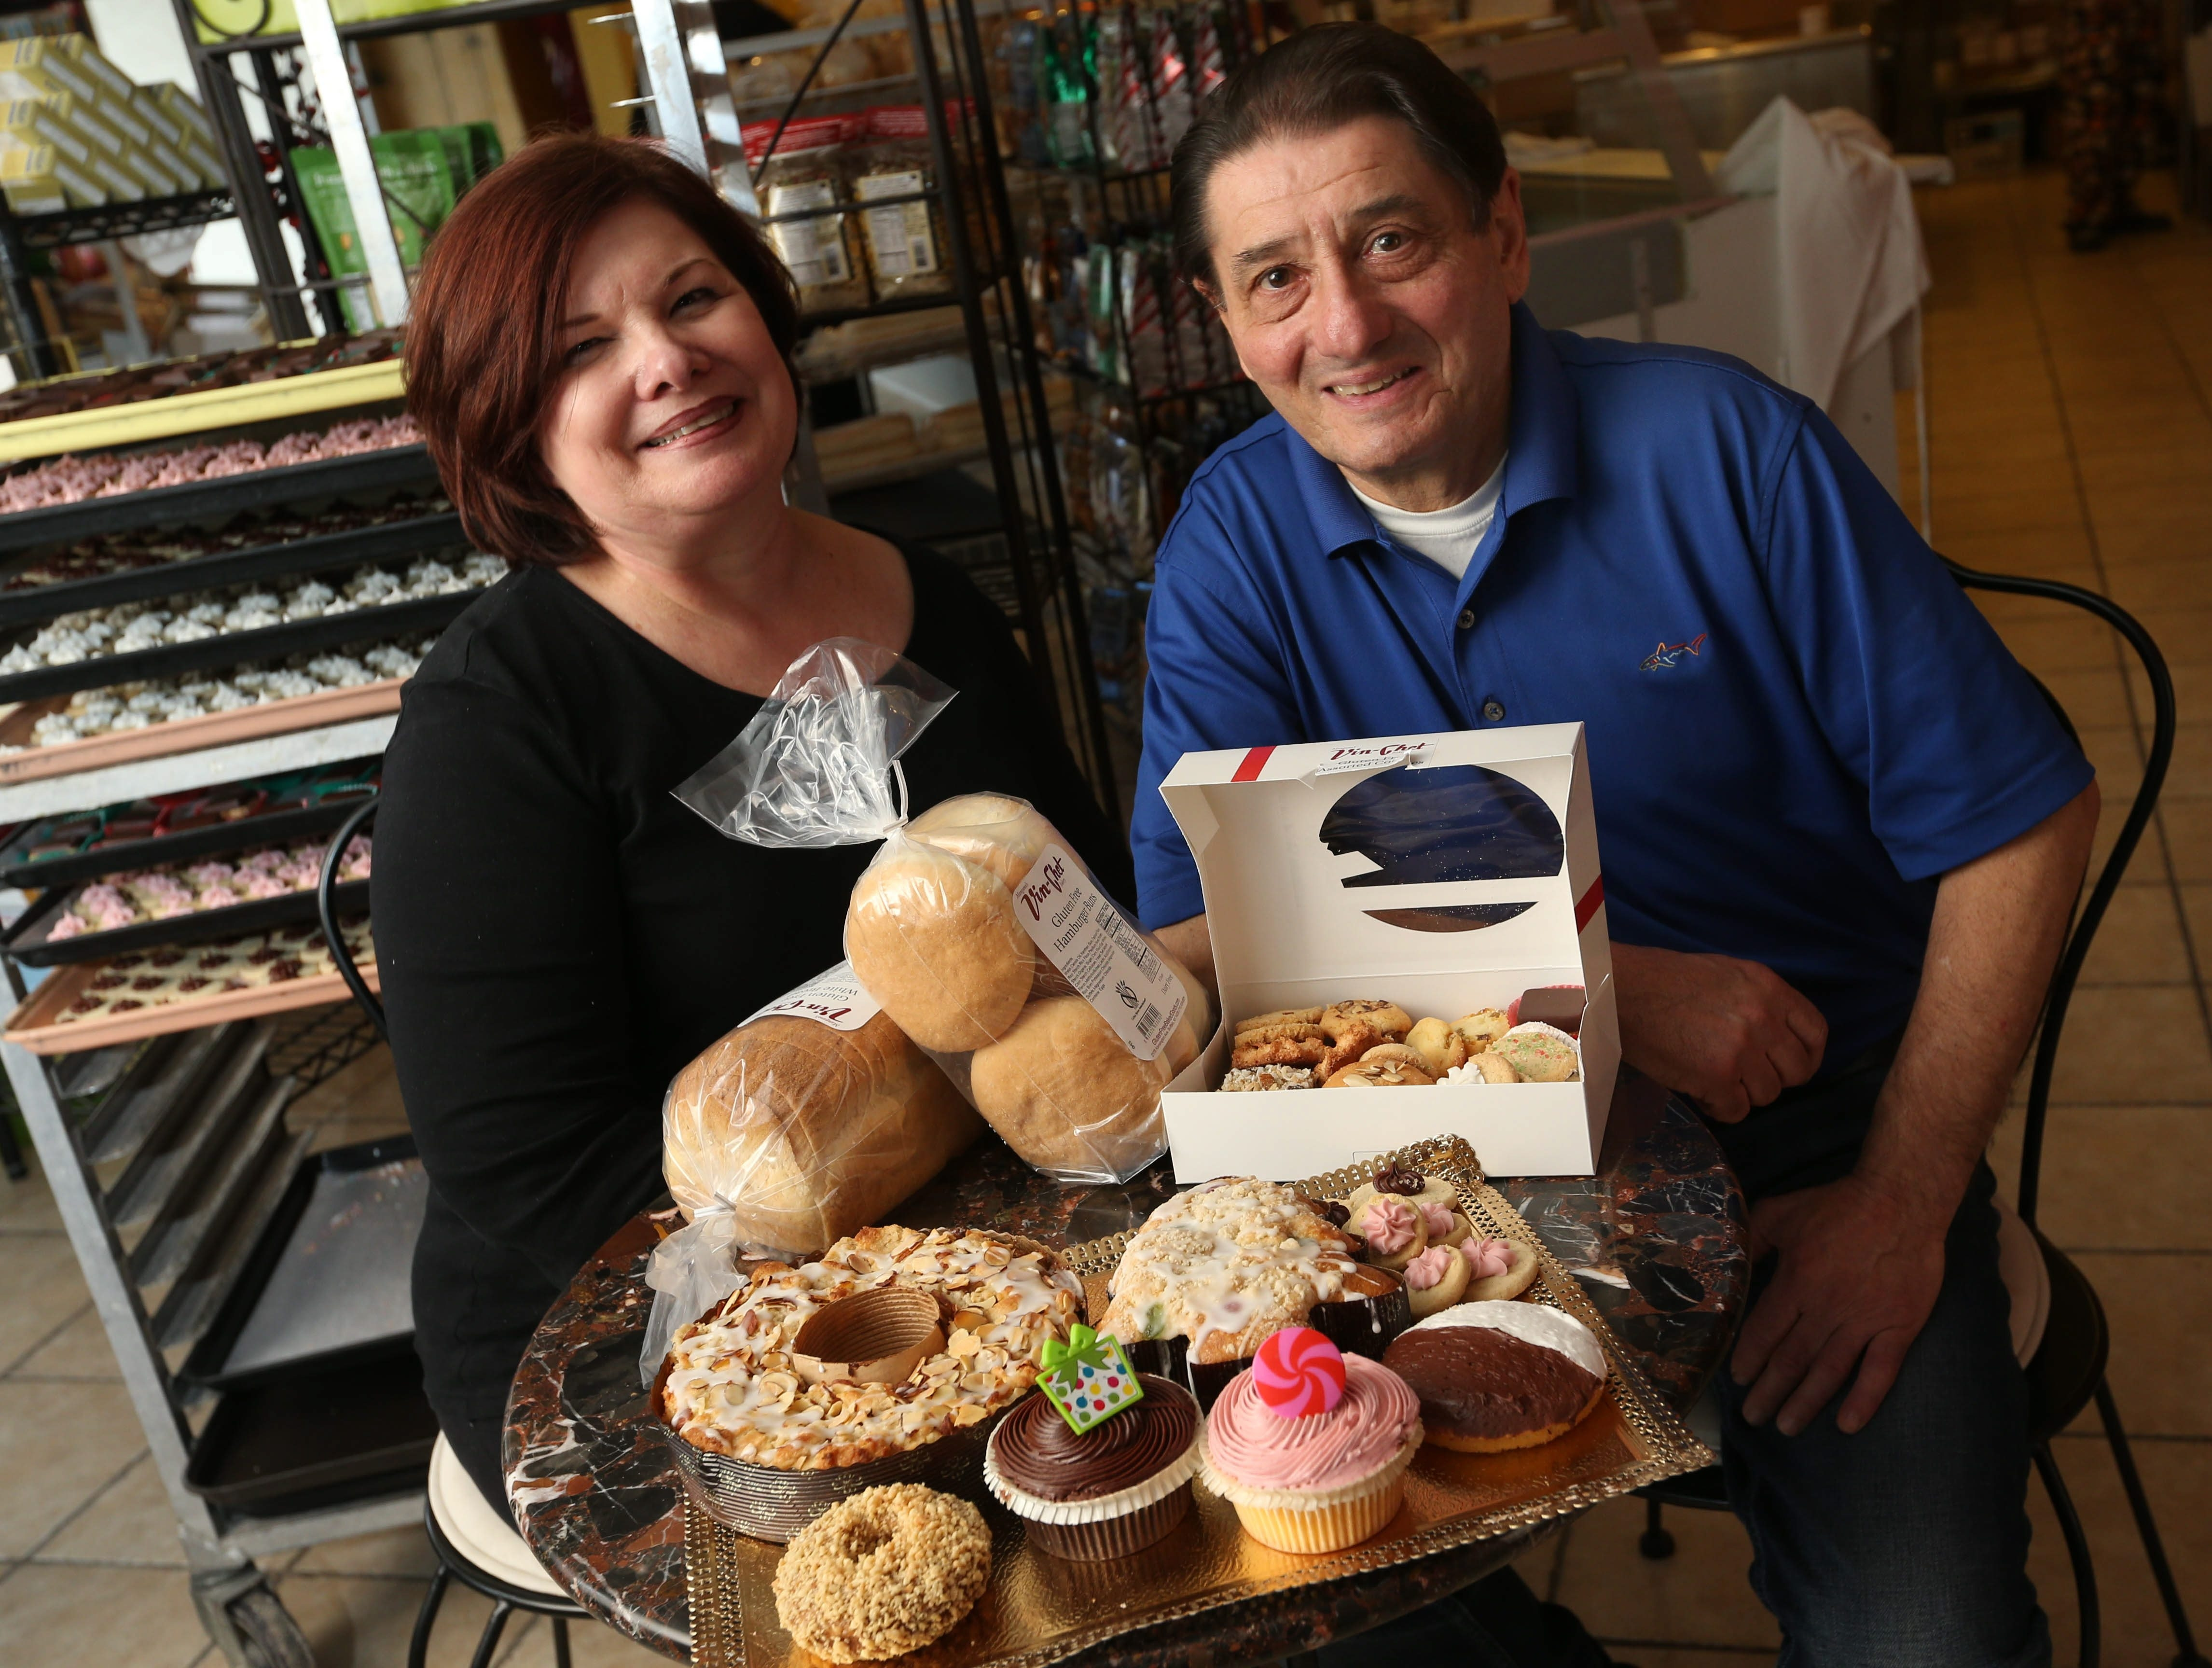 """""""We are not celiac ourselves but we like to eat, and we know what tastes good, and we are bakers, so we kept working."""" – Nancy and Joseph Mangano, owners of Vin-Chet Bakery in Amherst, began introducing gluten-free baked goods in 2007 and now that is all they make."""